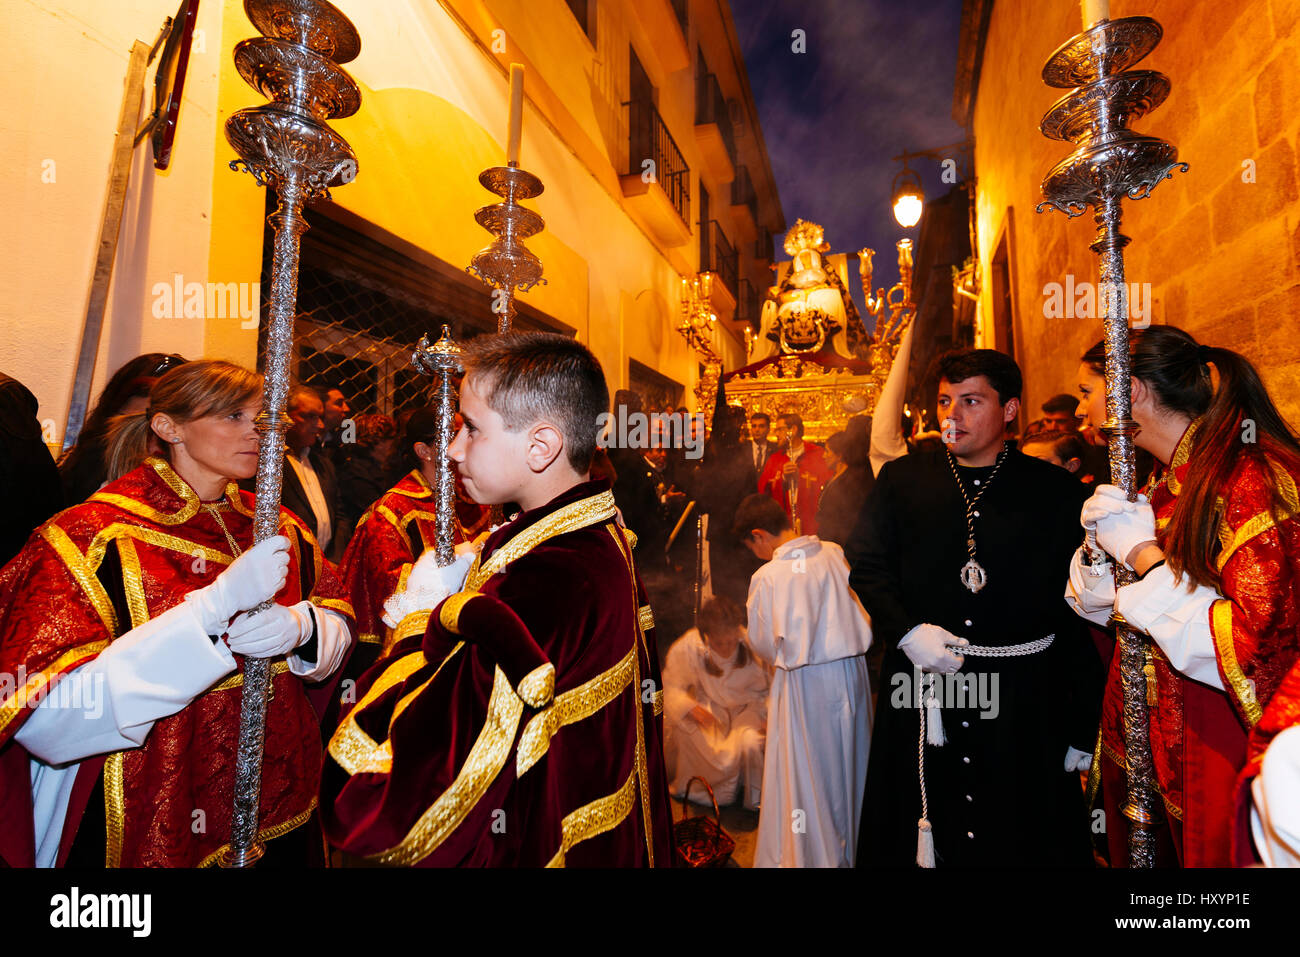 Brotherhood of Our Lady of Sorrows. Good Friday procession. Alcalá La Real. Jaén. Andalusia. Spain - Stock Image